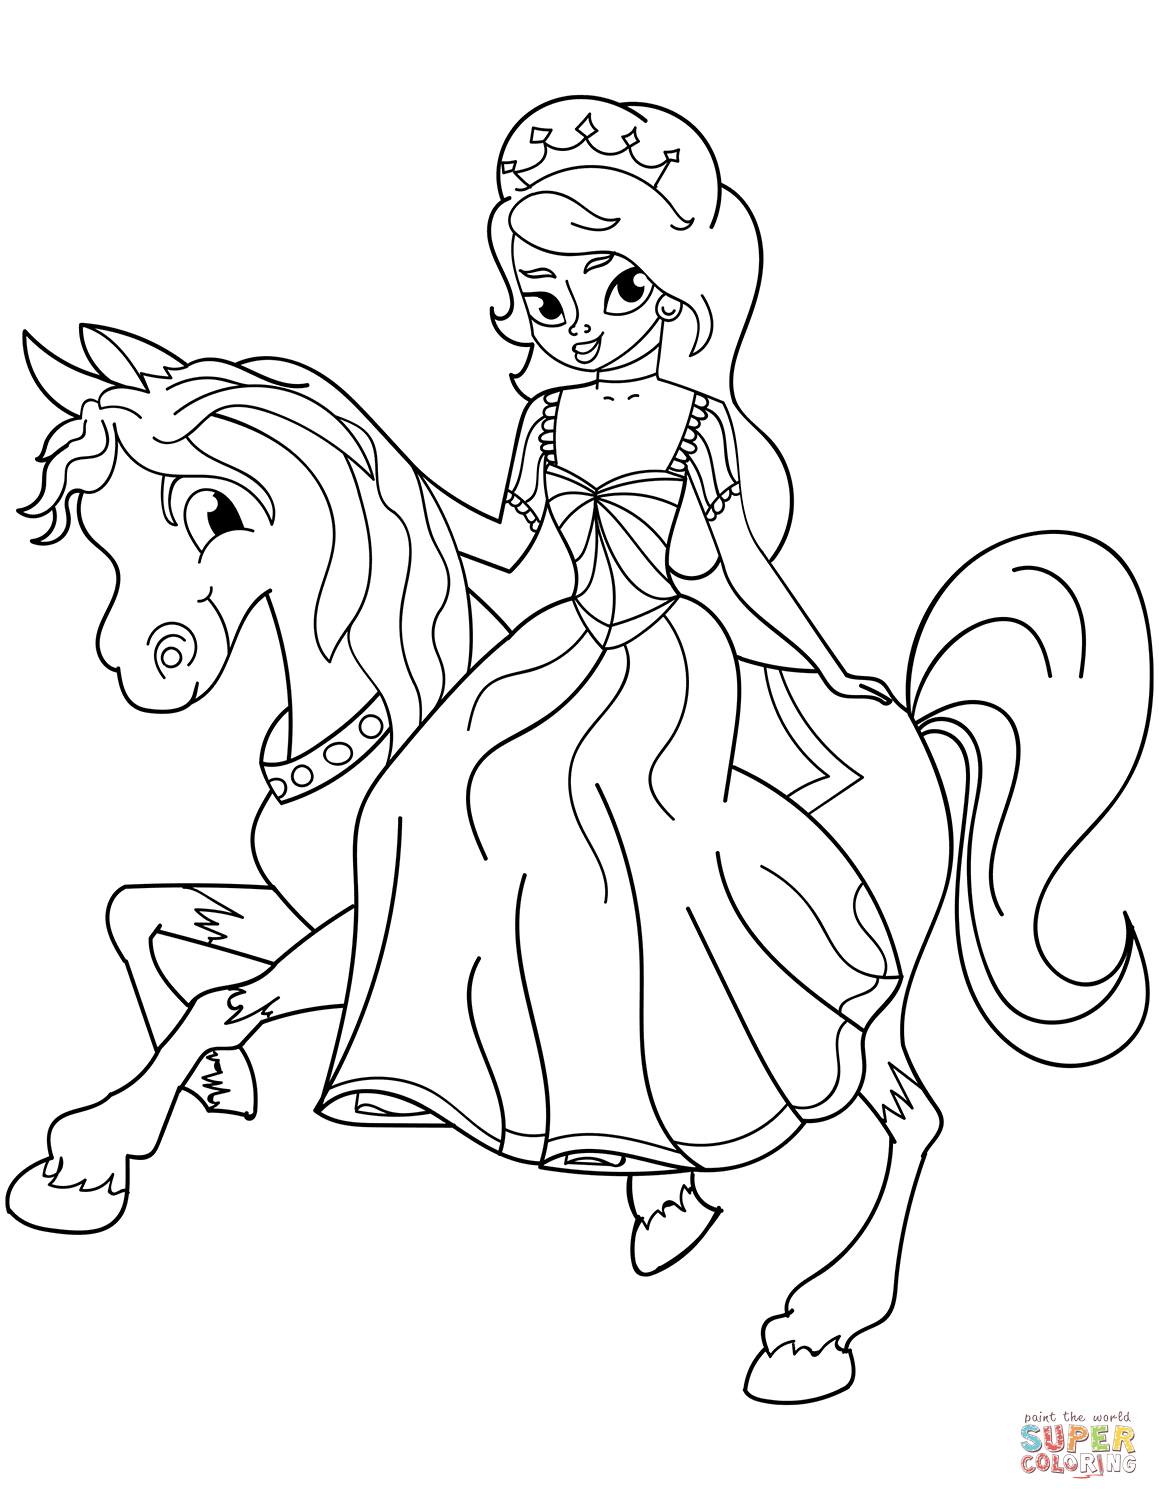 princess on horse coloring pages the princess riding on her horse coloring pages printable on princess coloring horse pages